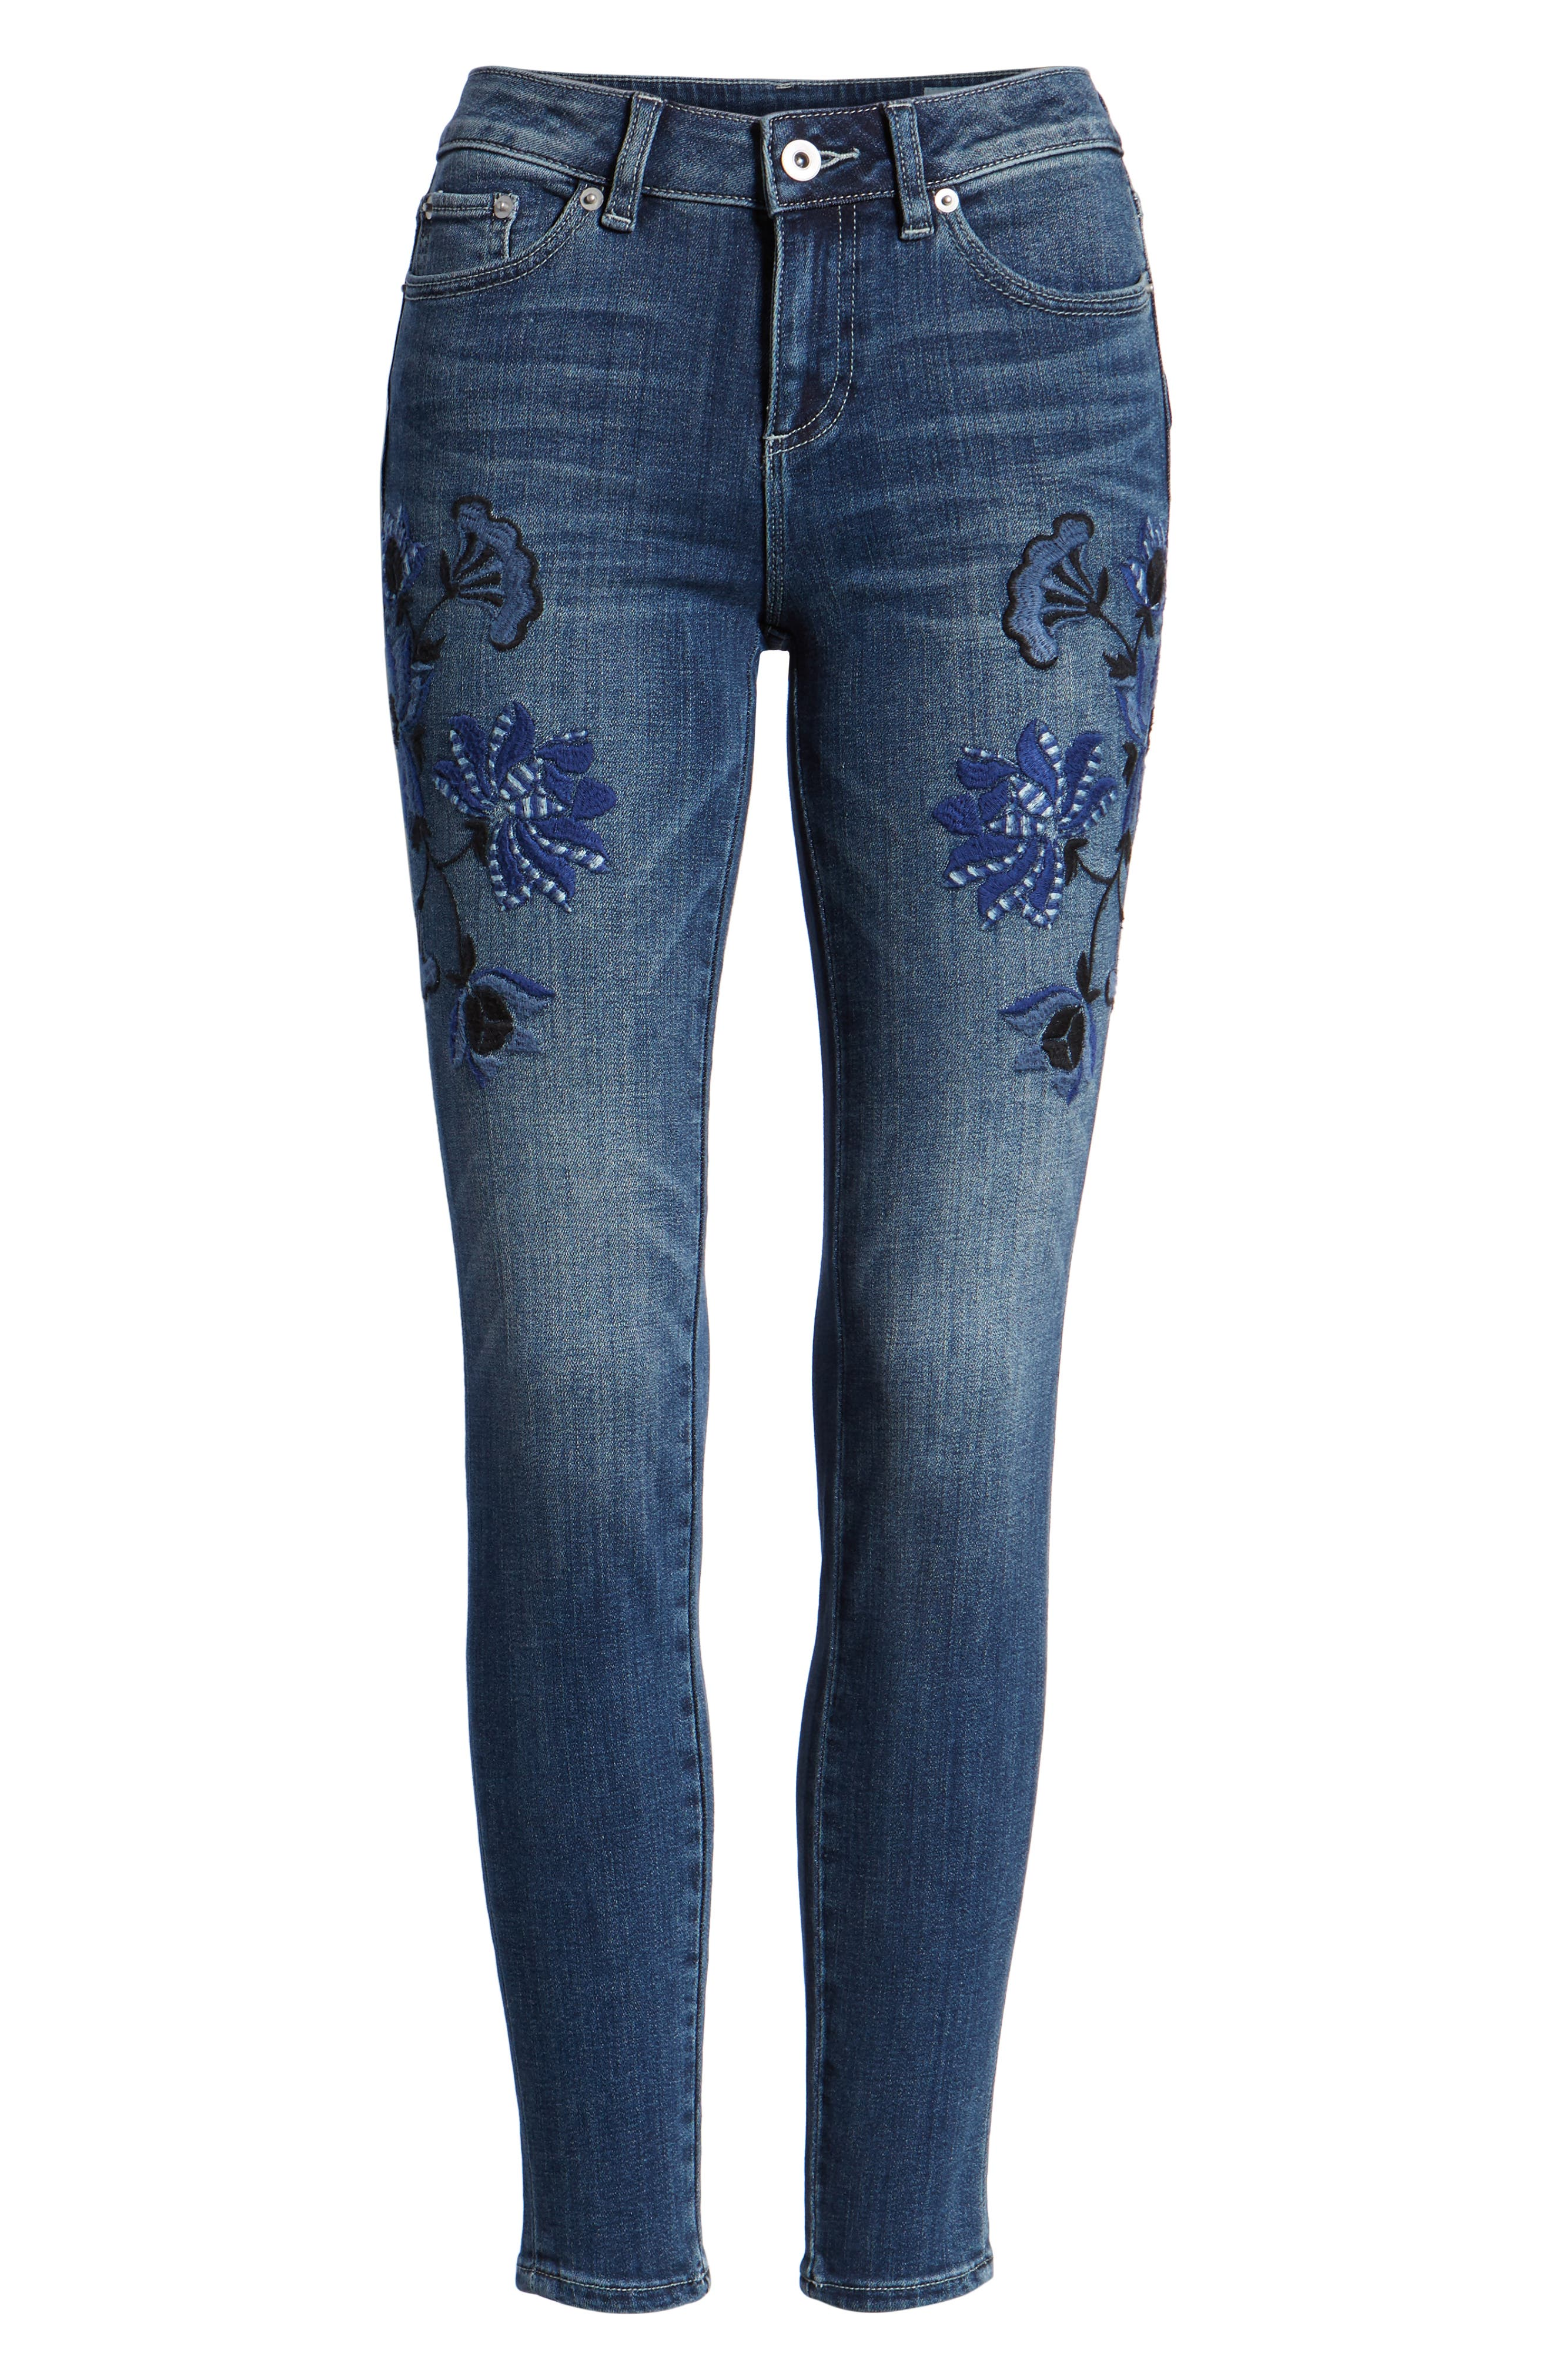 Floral Embroidered Skinny Jeans,                             Alternate thumbnail 7, color,                             464